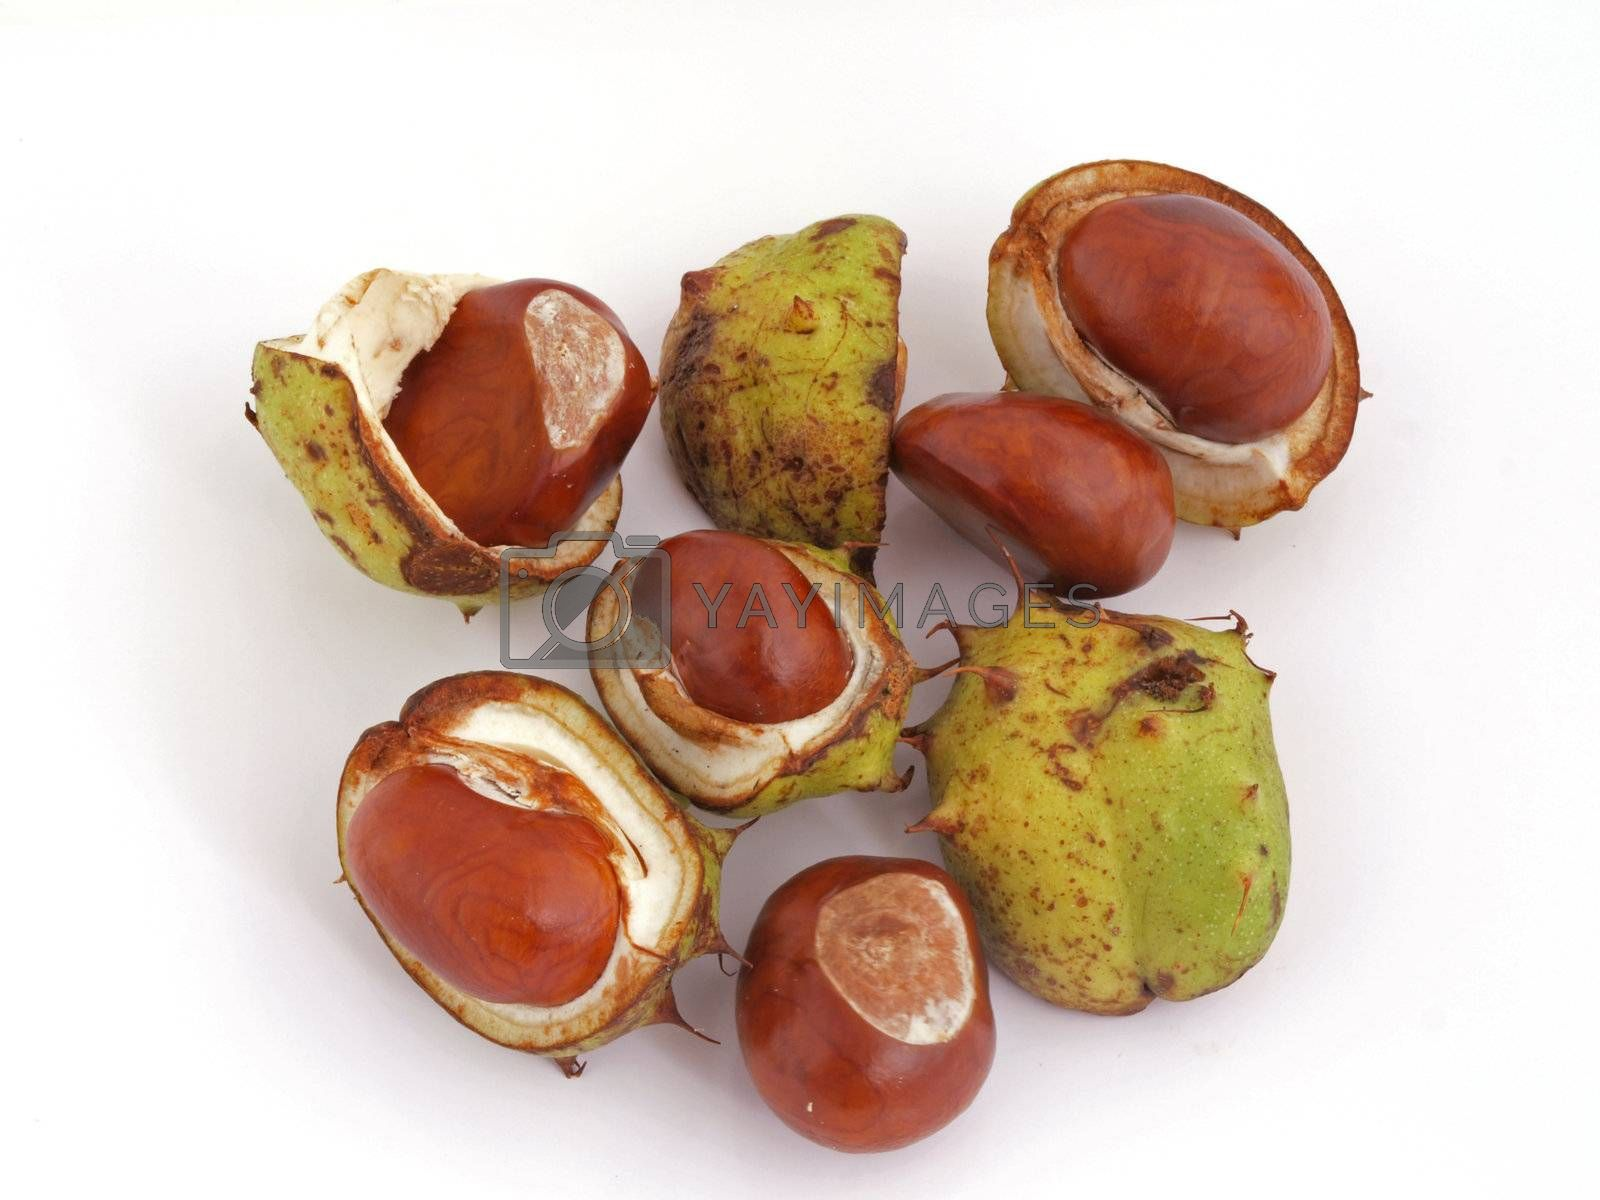 Royalty free image of Conker or Horse Chestnut by ianlangley